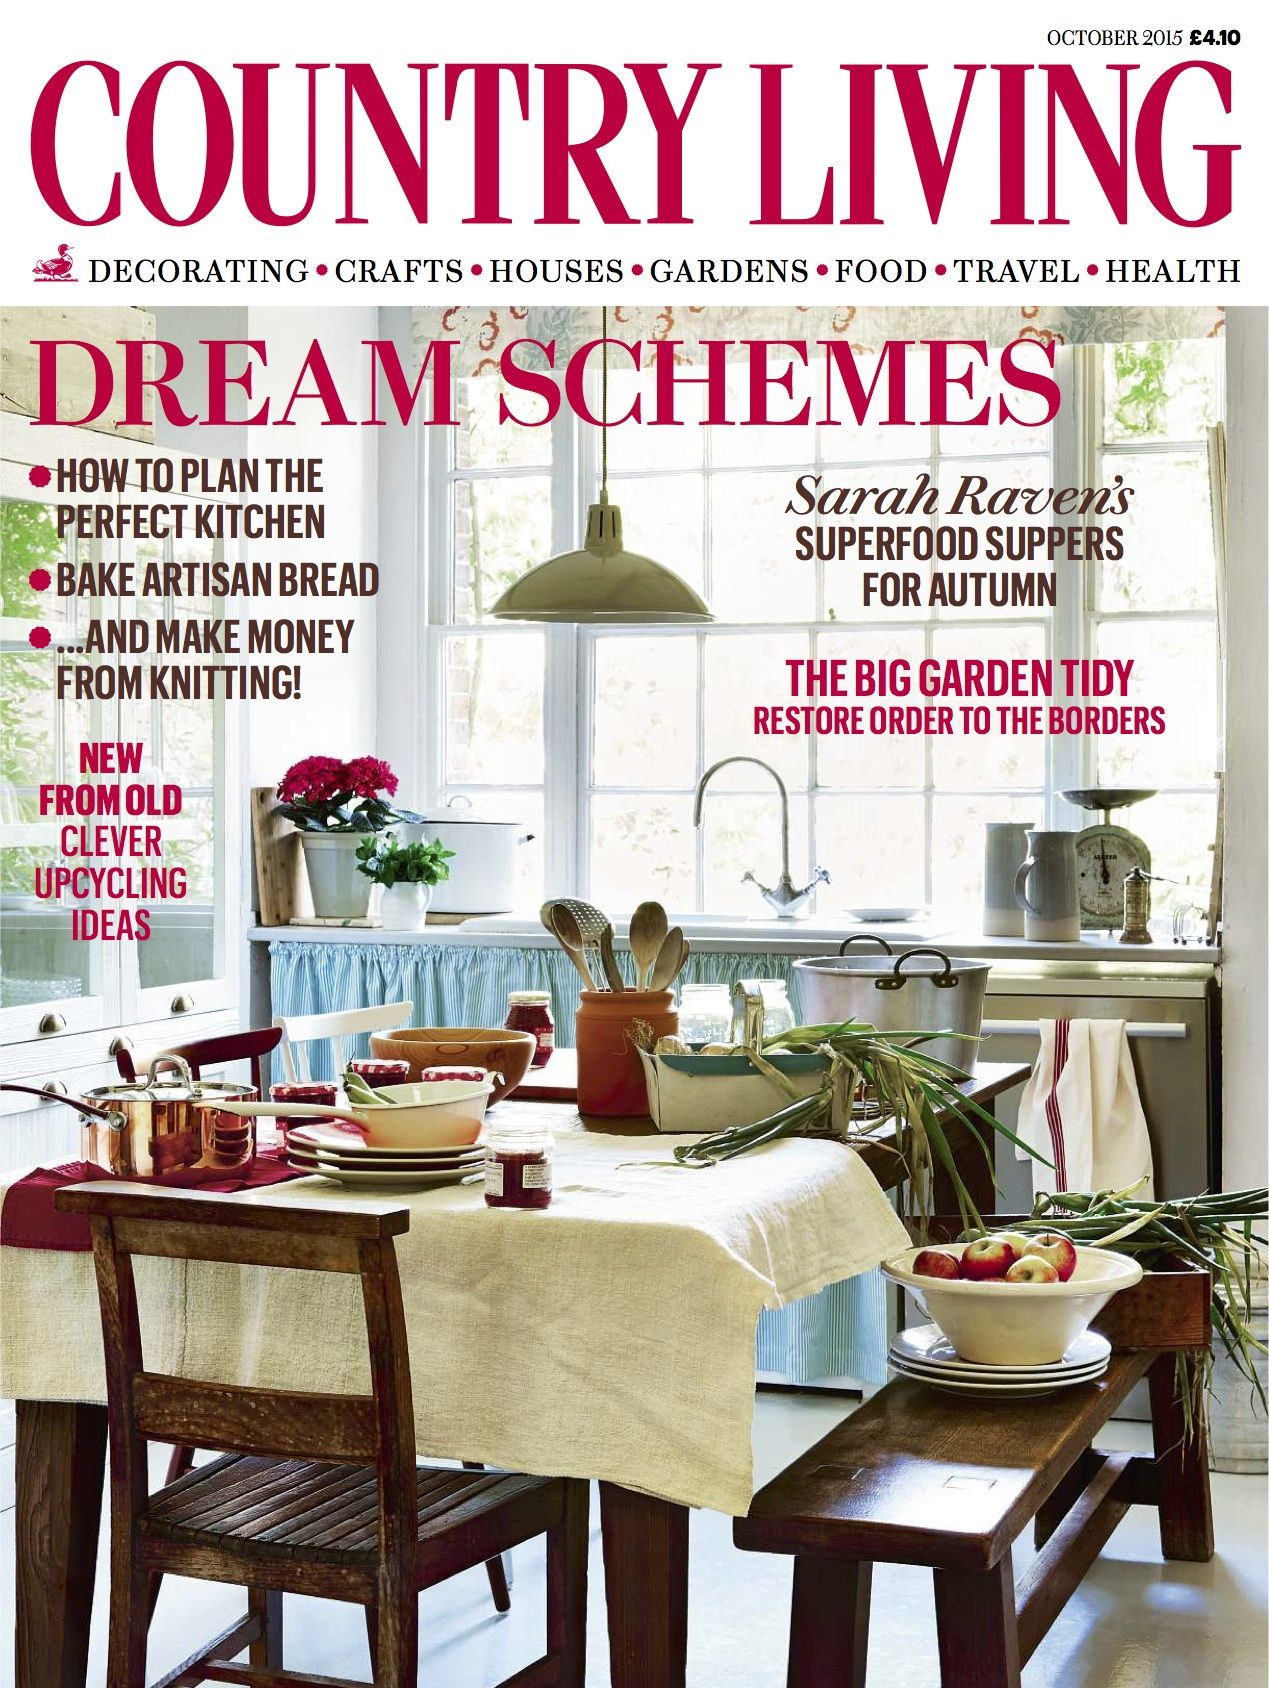 Country Living Magazine October 2015 Cover Countryliving Co Uk Country Living Magazine Country Living Uk Country Living